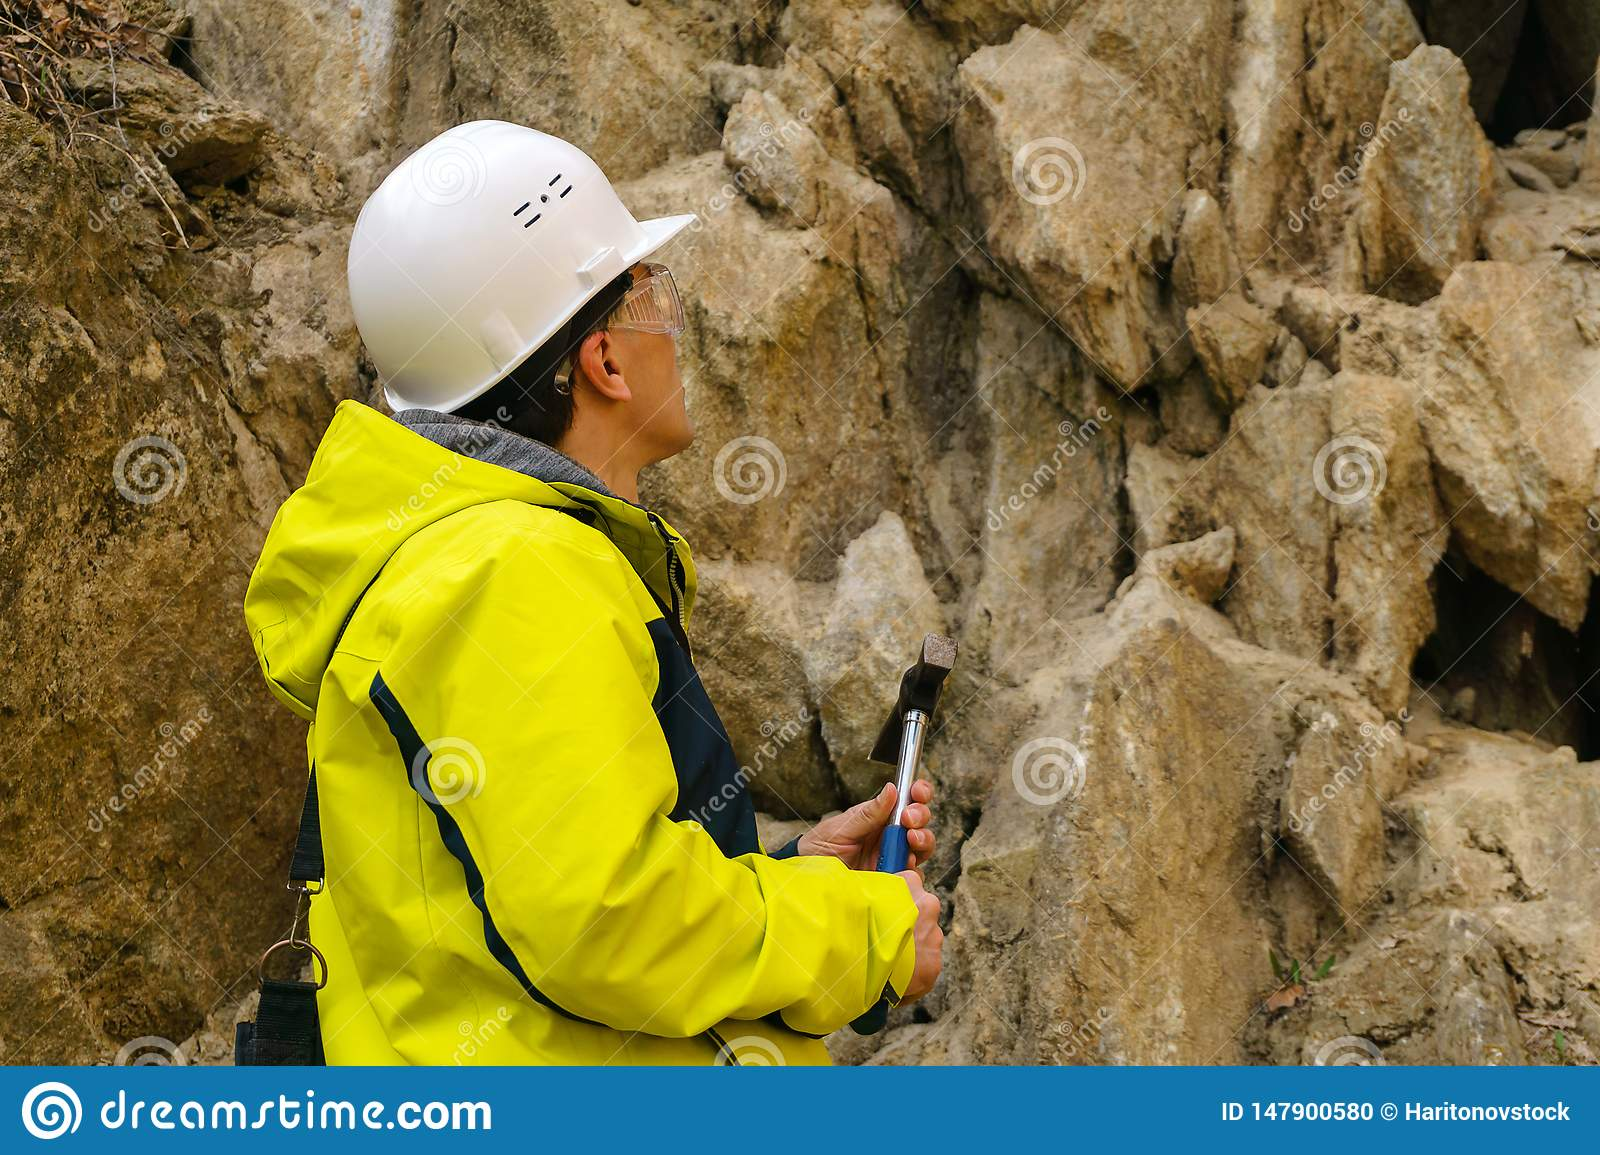 Geologist is going to take a rock sample